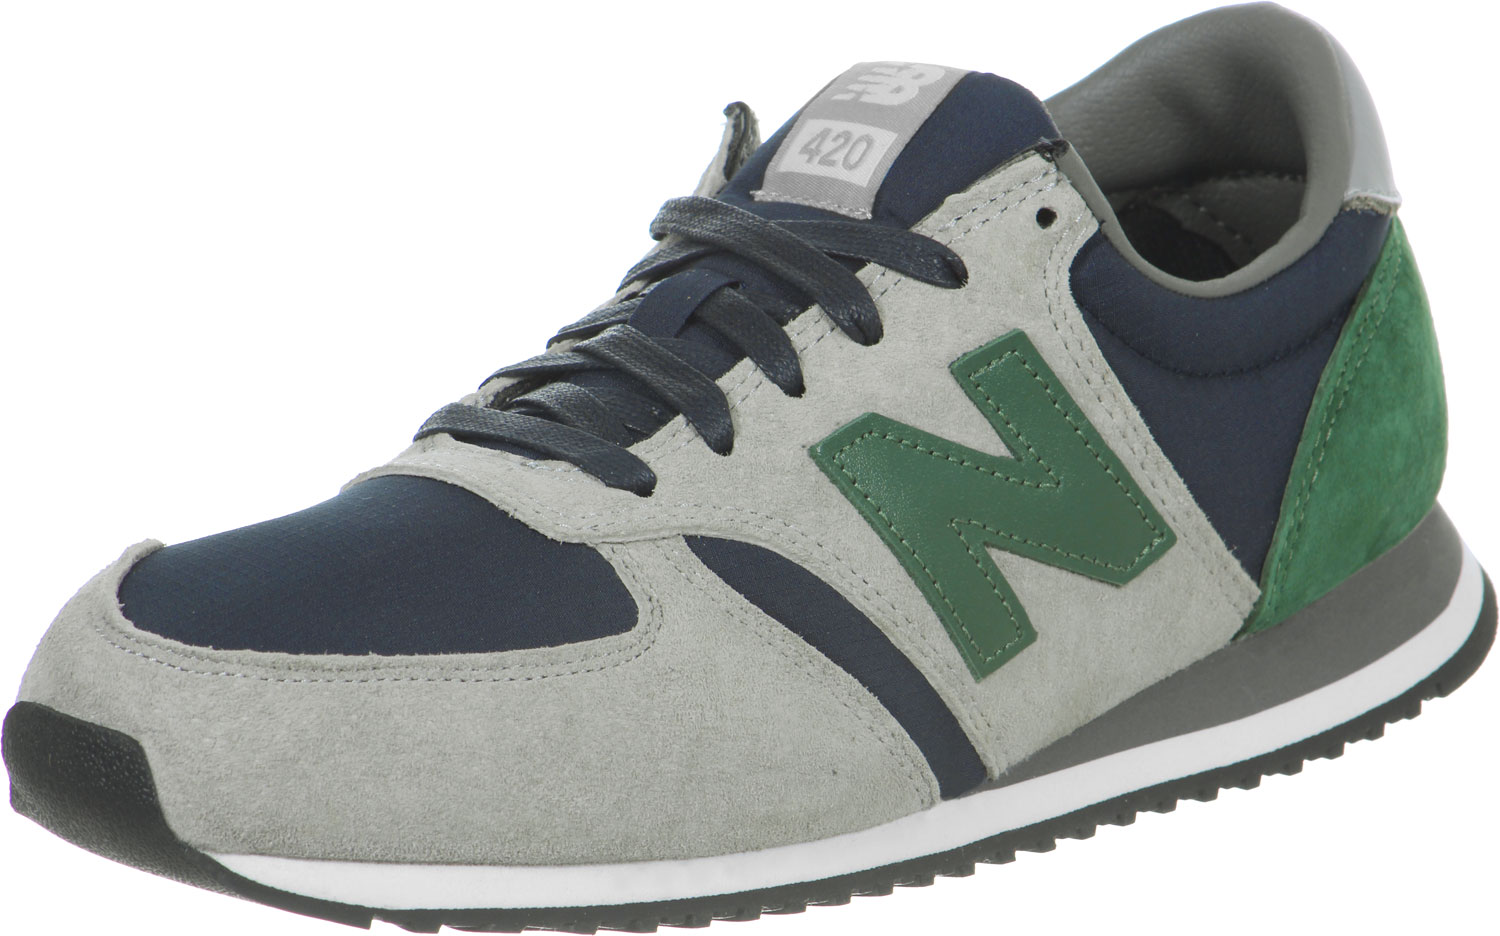 separation shoes cc104 787c3 new balance vert bleu